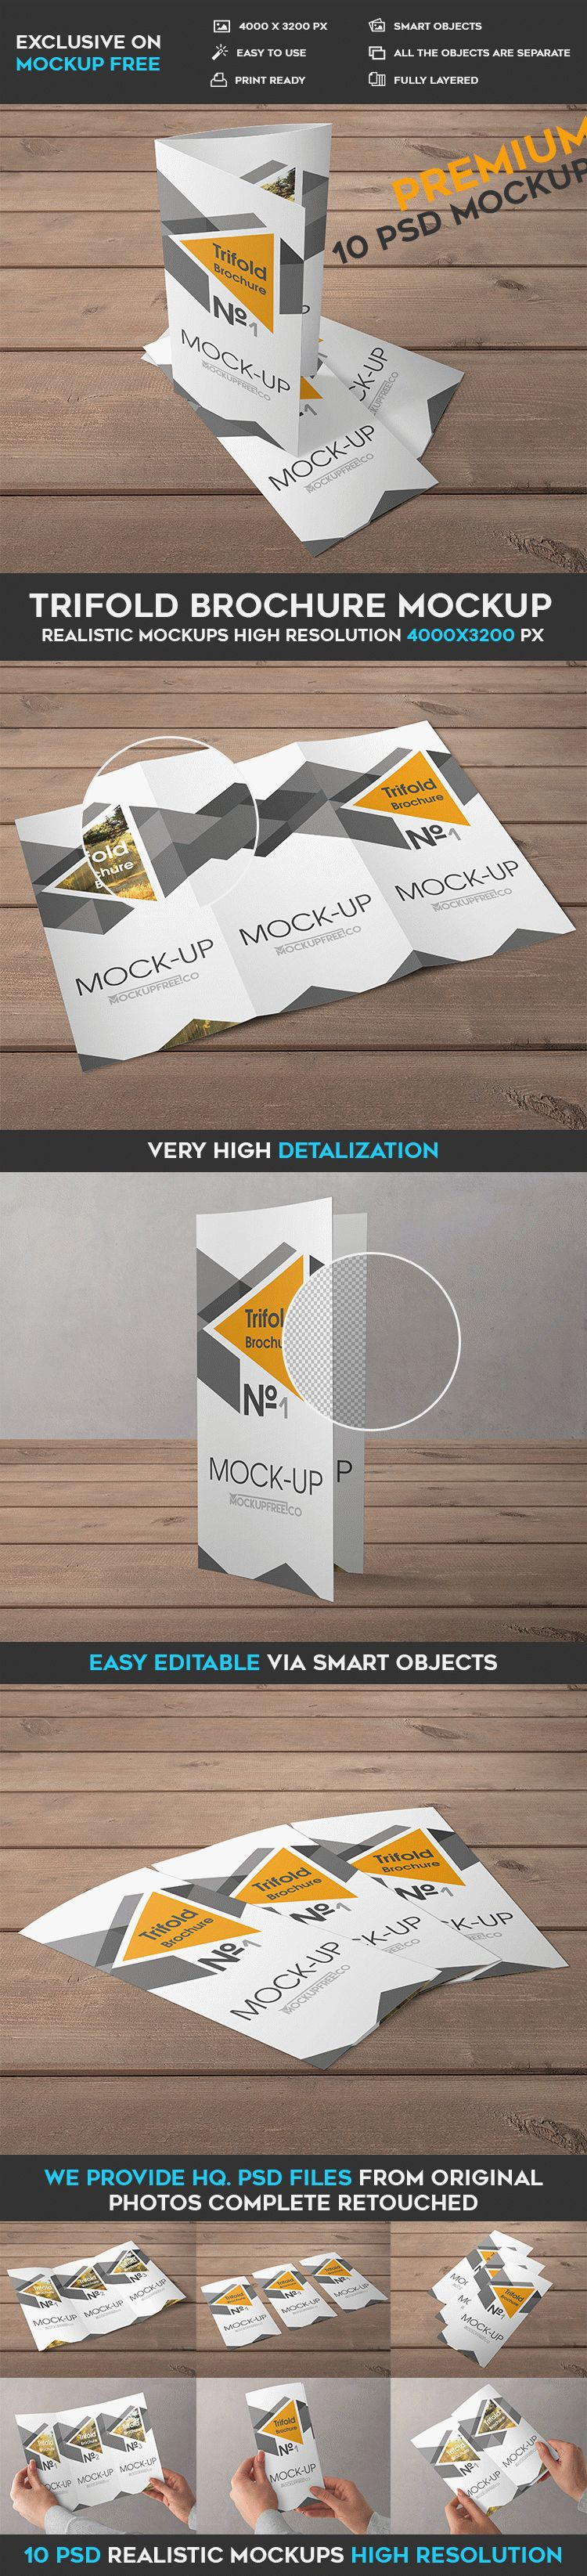 Bigpreview_trifold-brochure-10-premium-psd-mockups